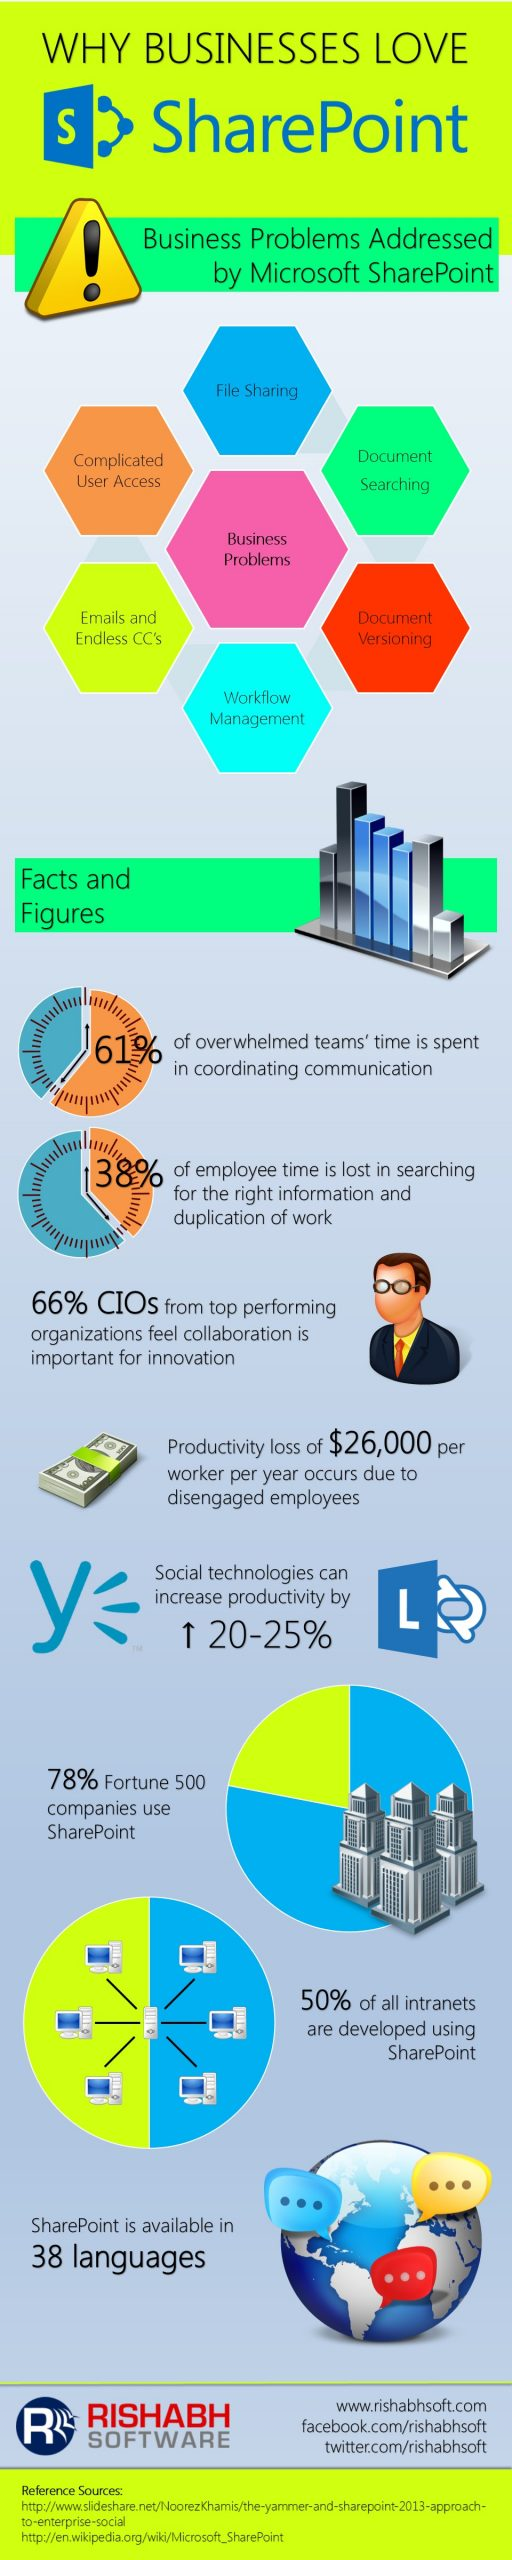 SharePoint-Infographic